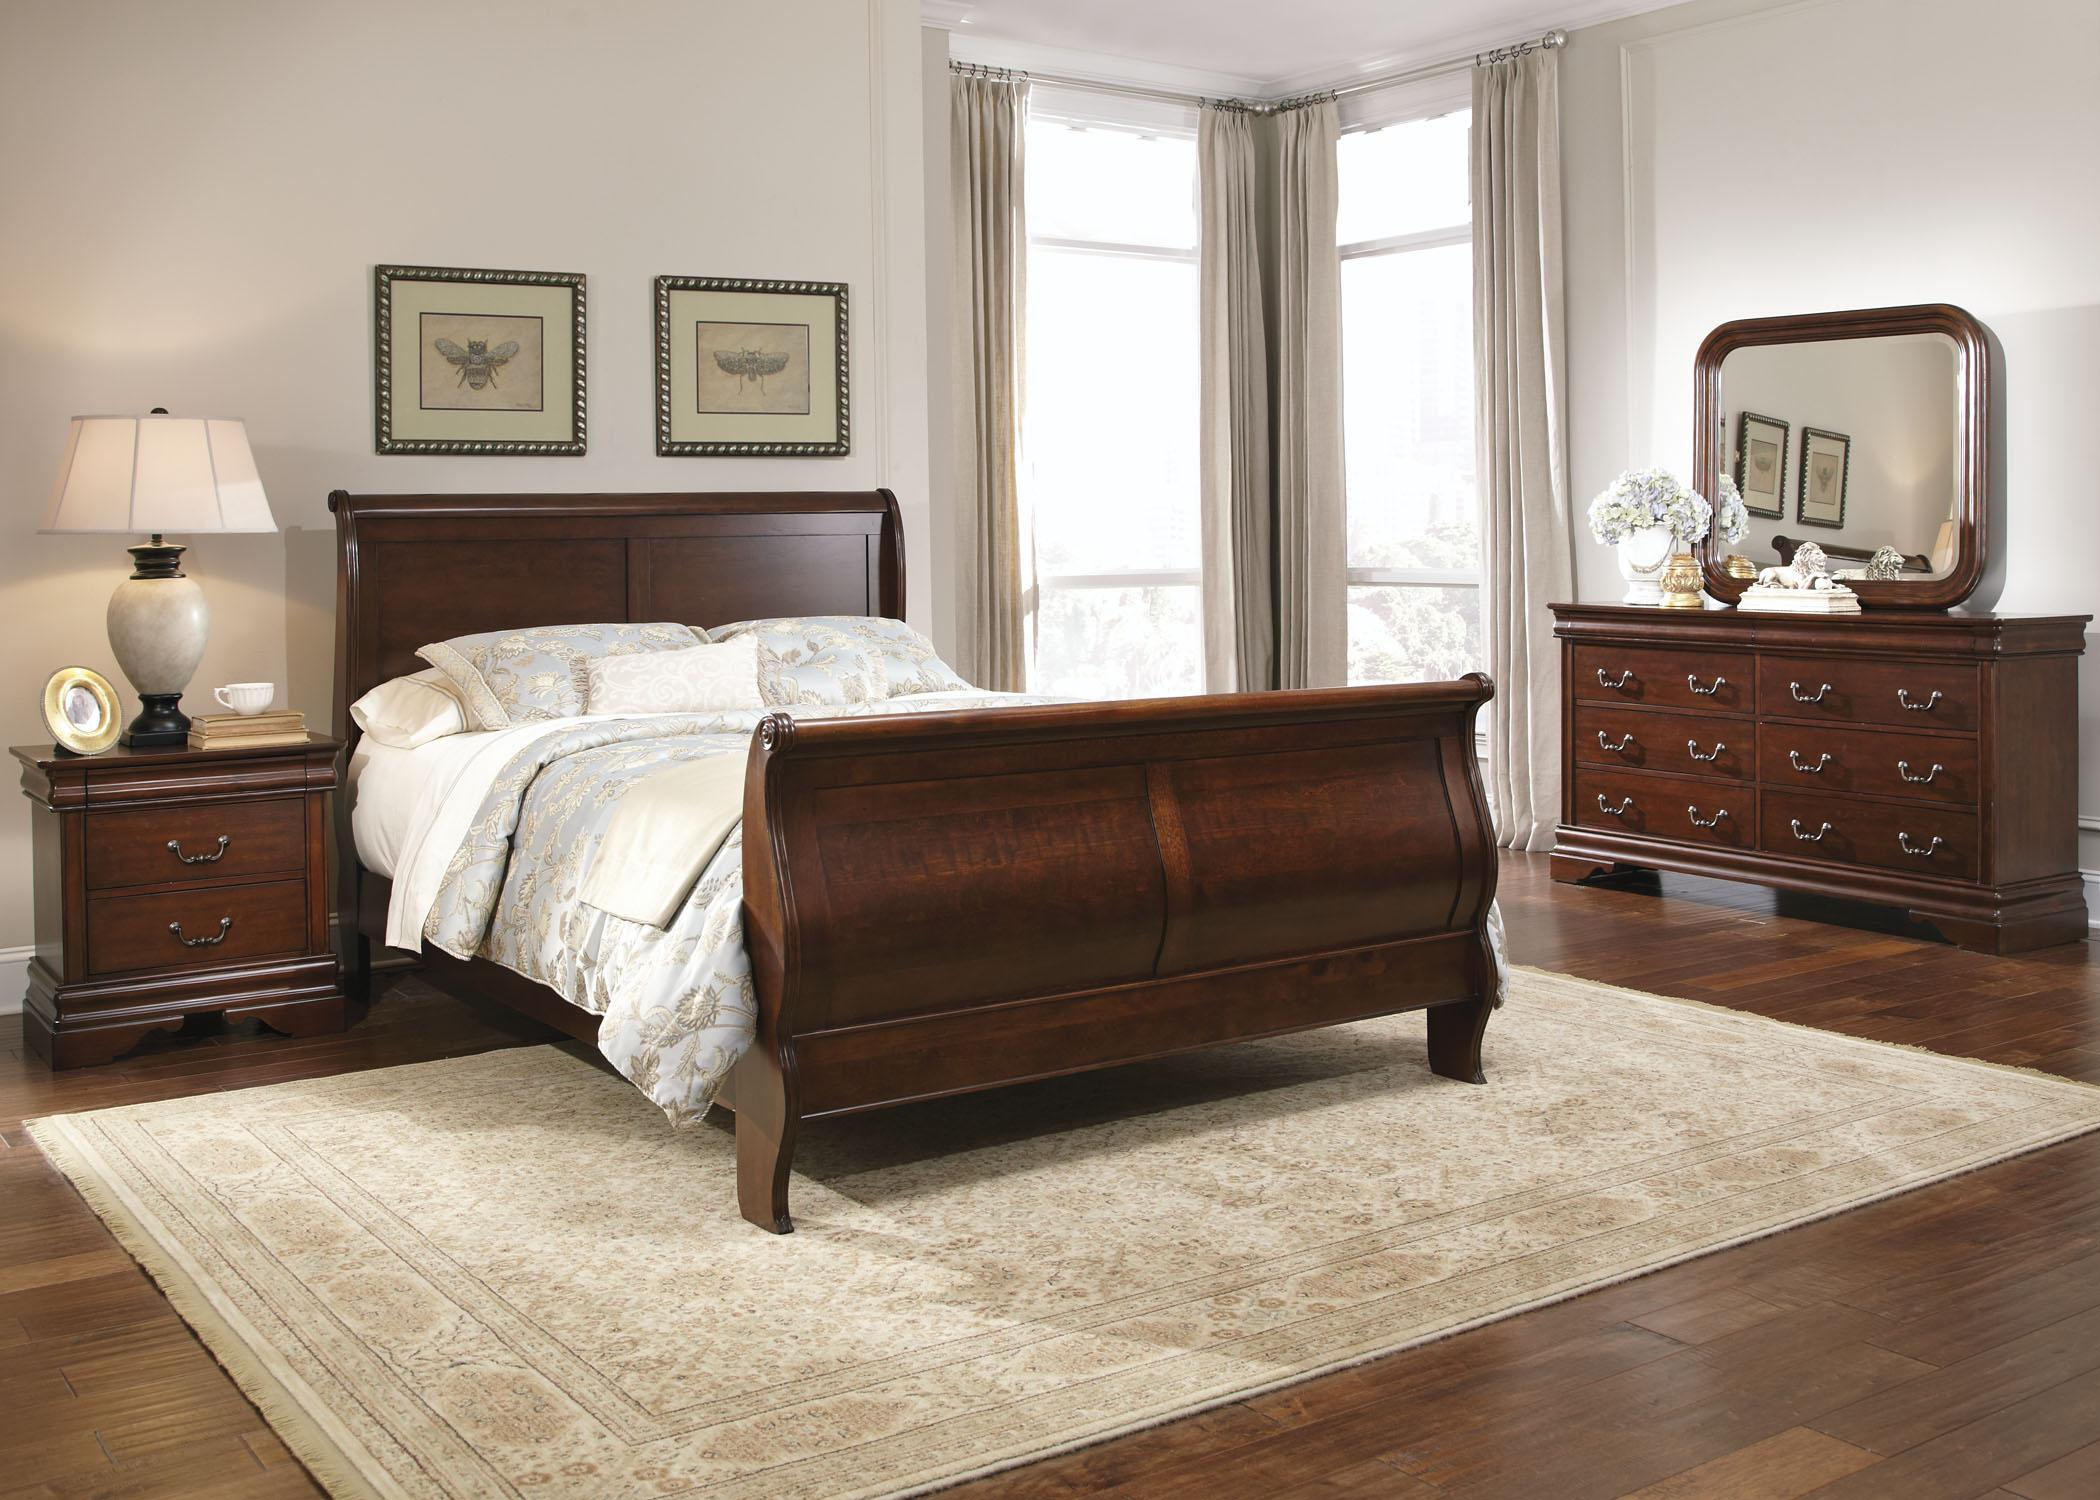 Liberty Furniture Carriage Court Queen Sleigh Bed, Dresser & Mirror, Chest - Item Number: 709-BR-GP31